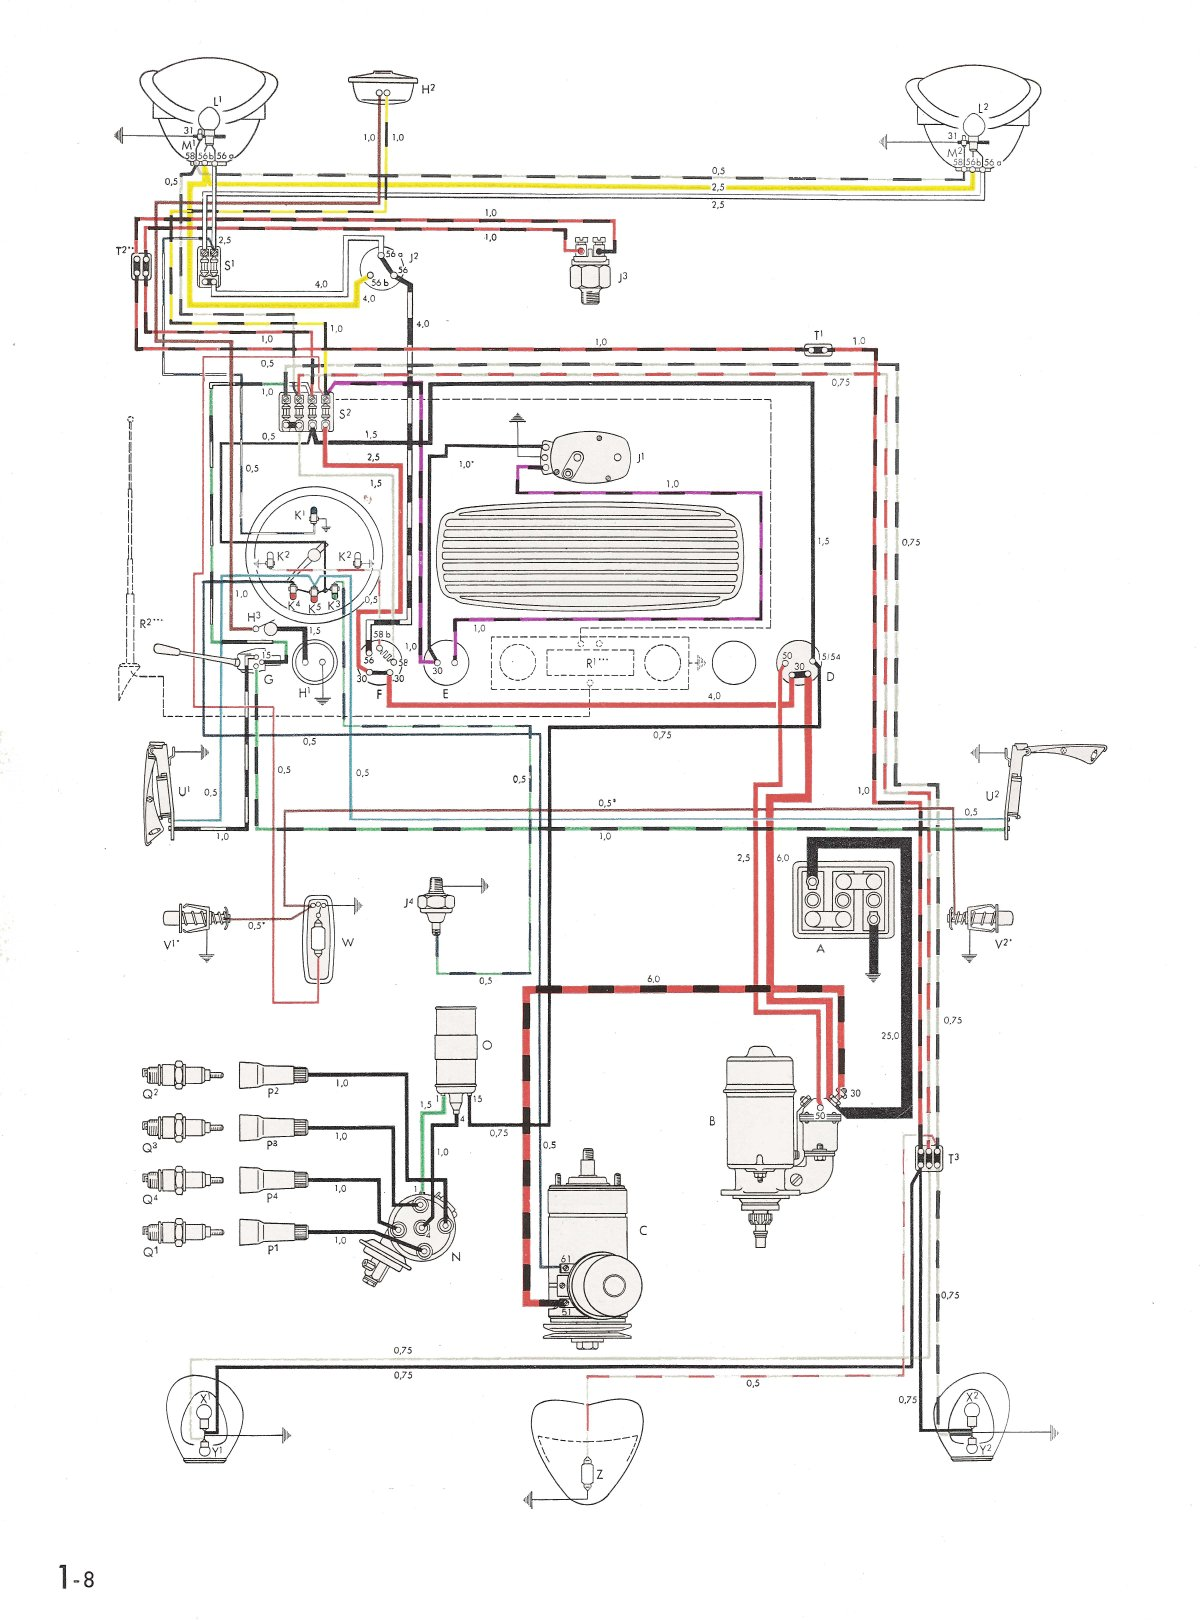 1971 mach 1 fuse box wiring diagram